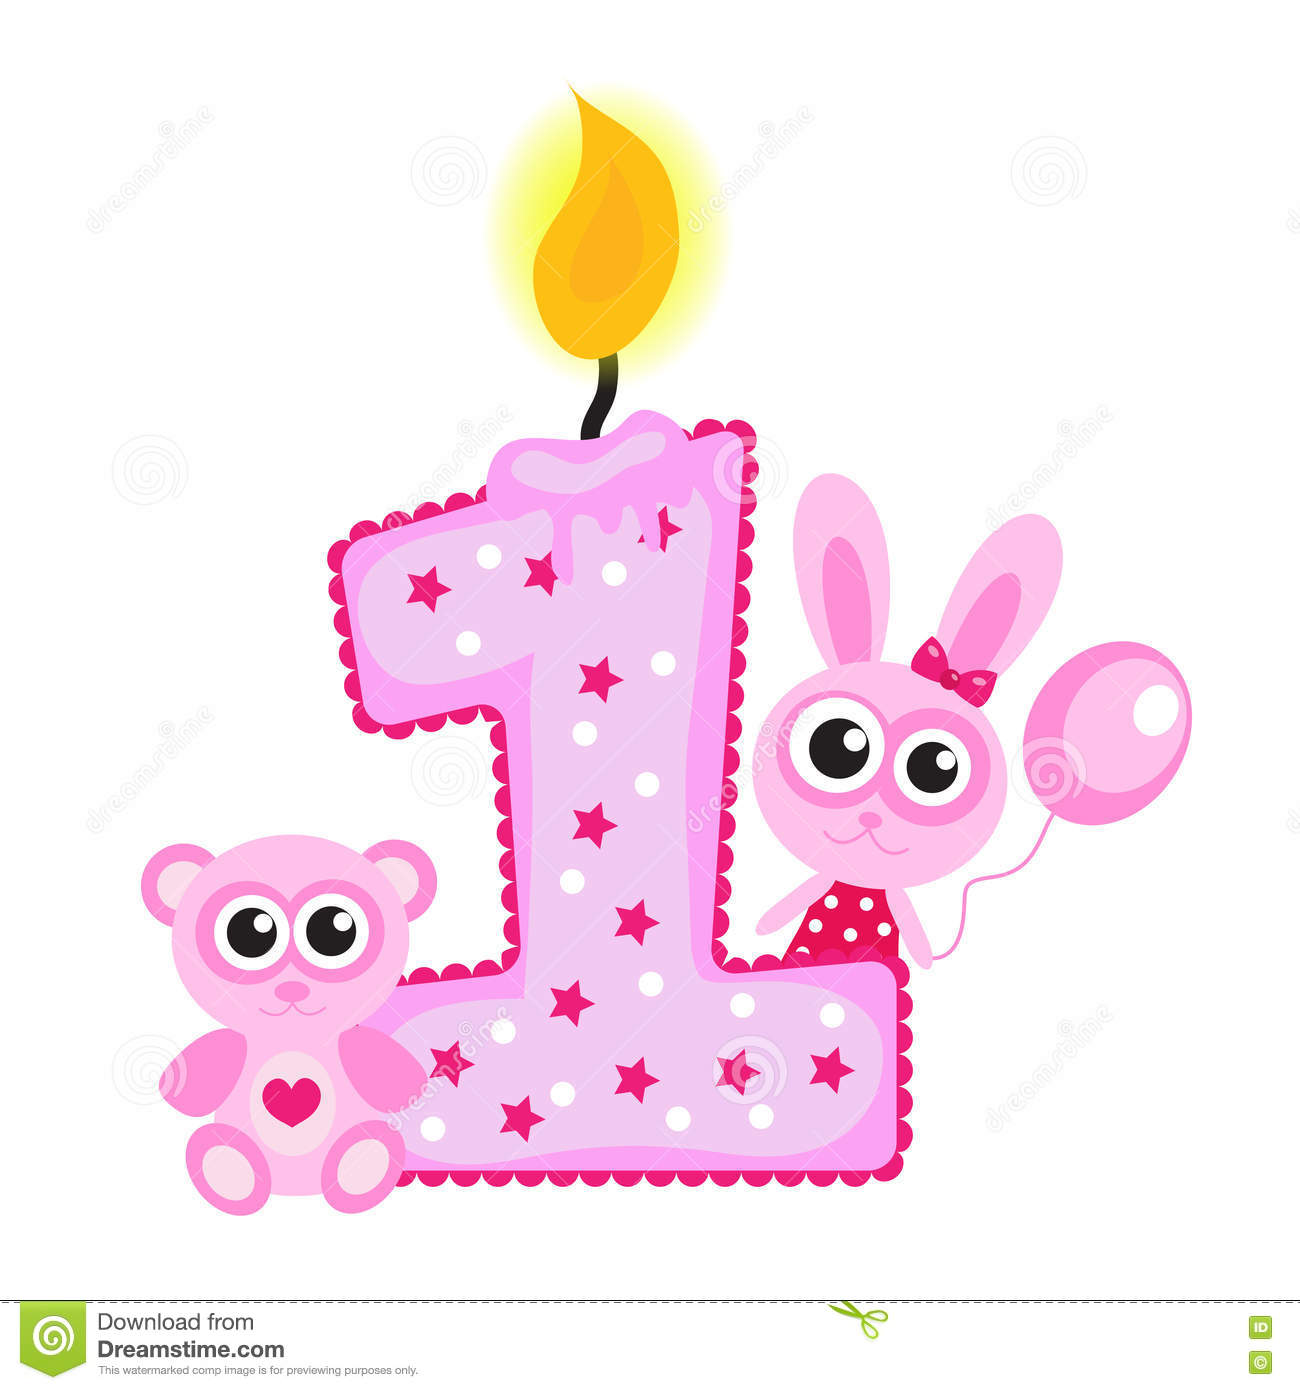 happy first birthday images ; happy-first-birthday-candle-animals-white-pink-card-72974687